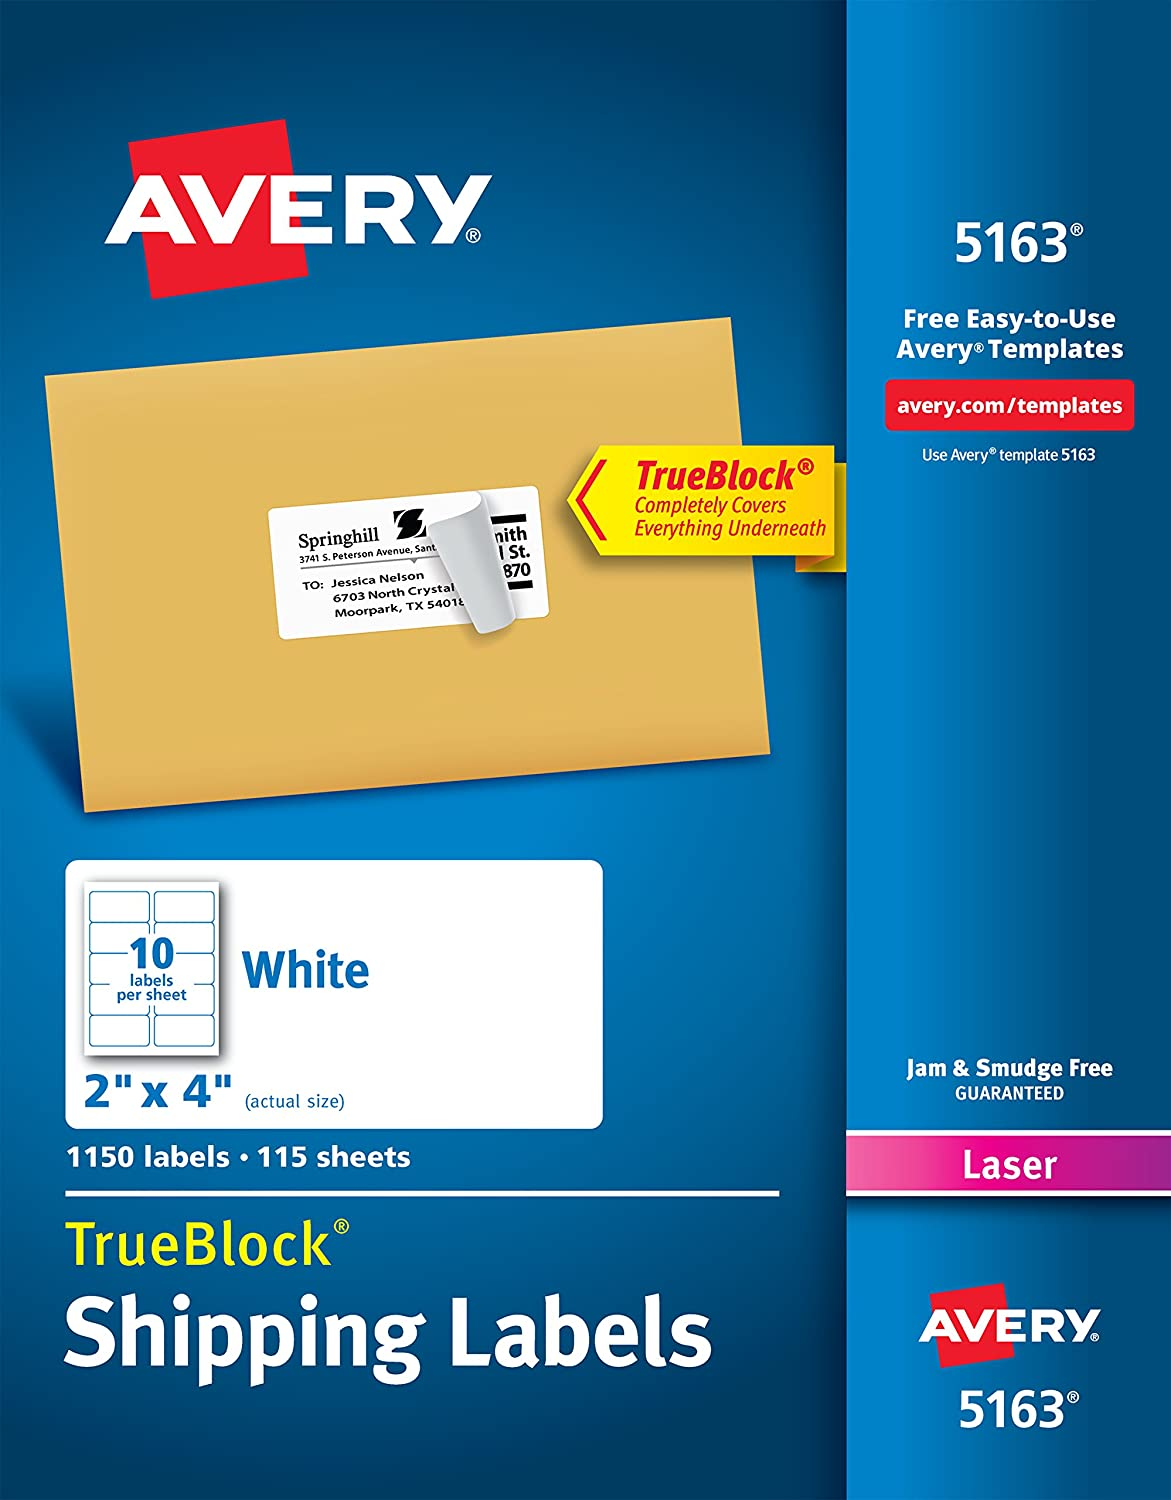 Amazon.com : Avery Shipping Address Labels, Laser Printers, 1, 150 ...